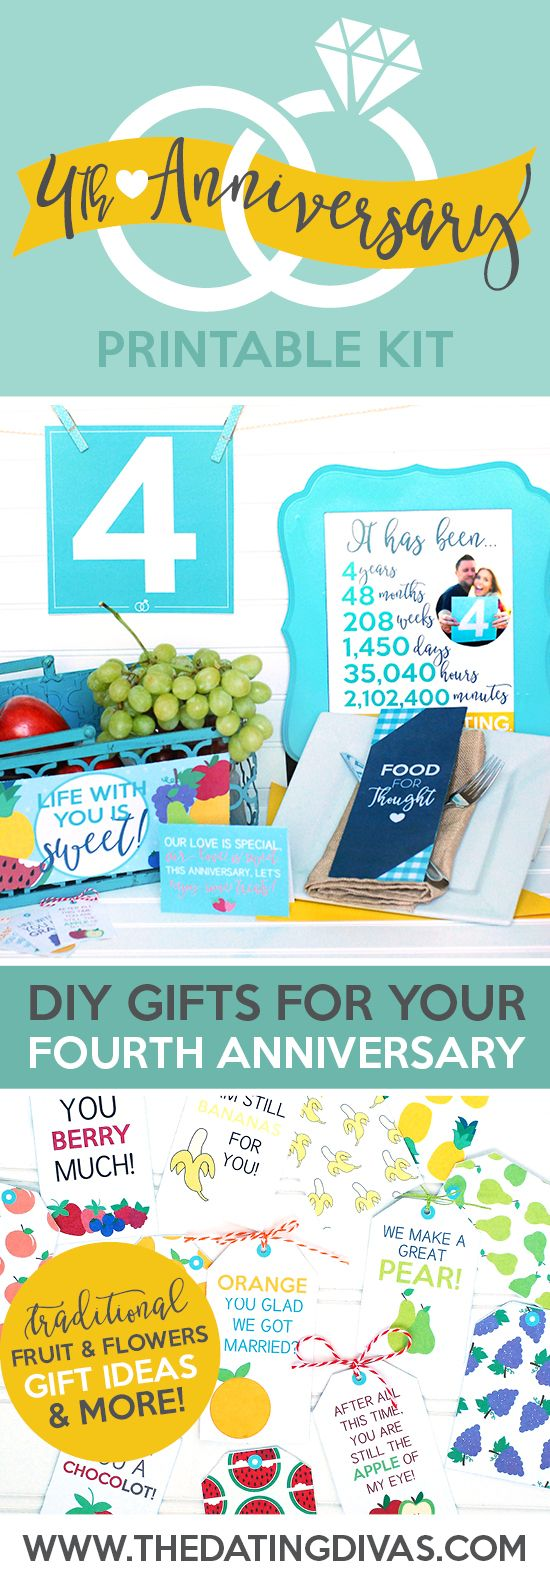 Fourth Anniversary Gift Printable Kit 4th Year Anniversary Gifts Anniversary Ideas For Him 4th Anniversary Gifts